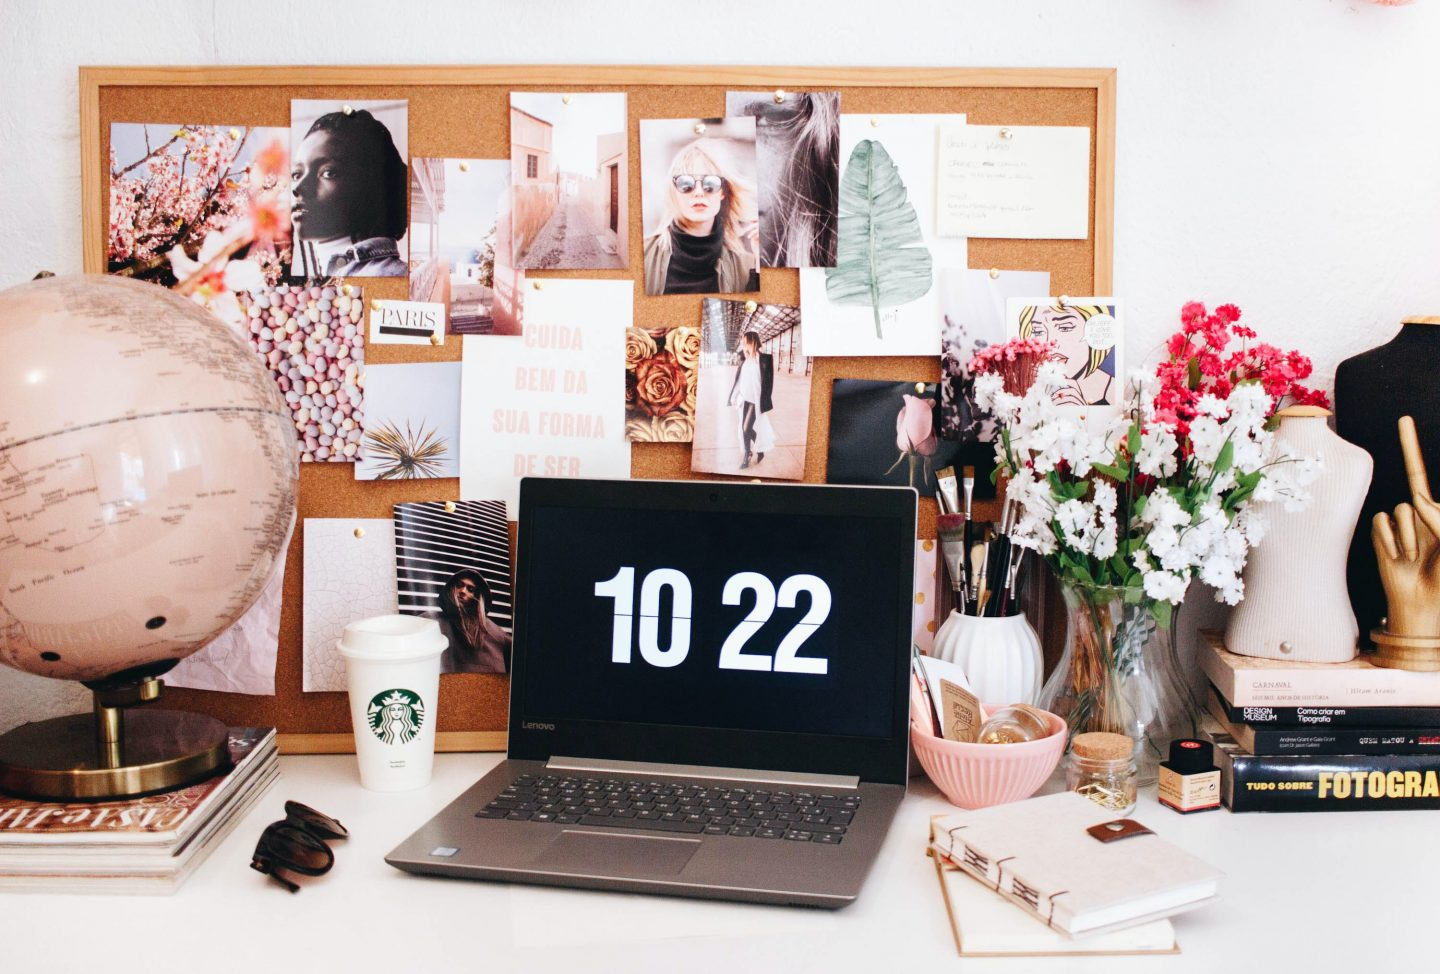 Blogging In 2020: Things I would do differently